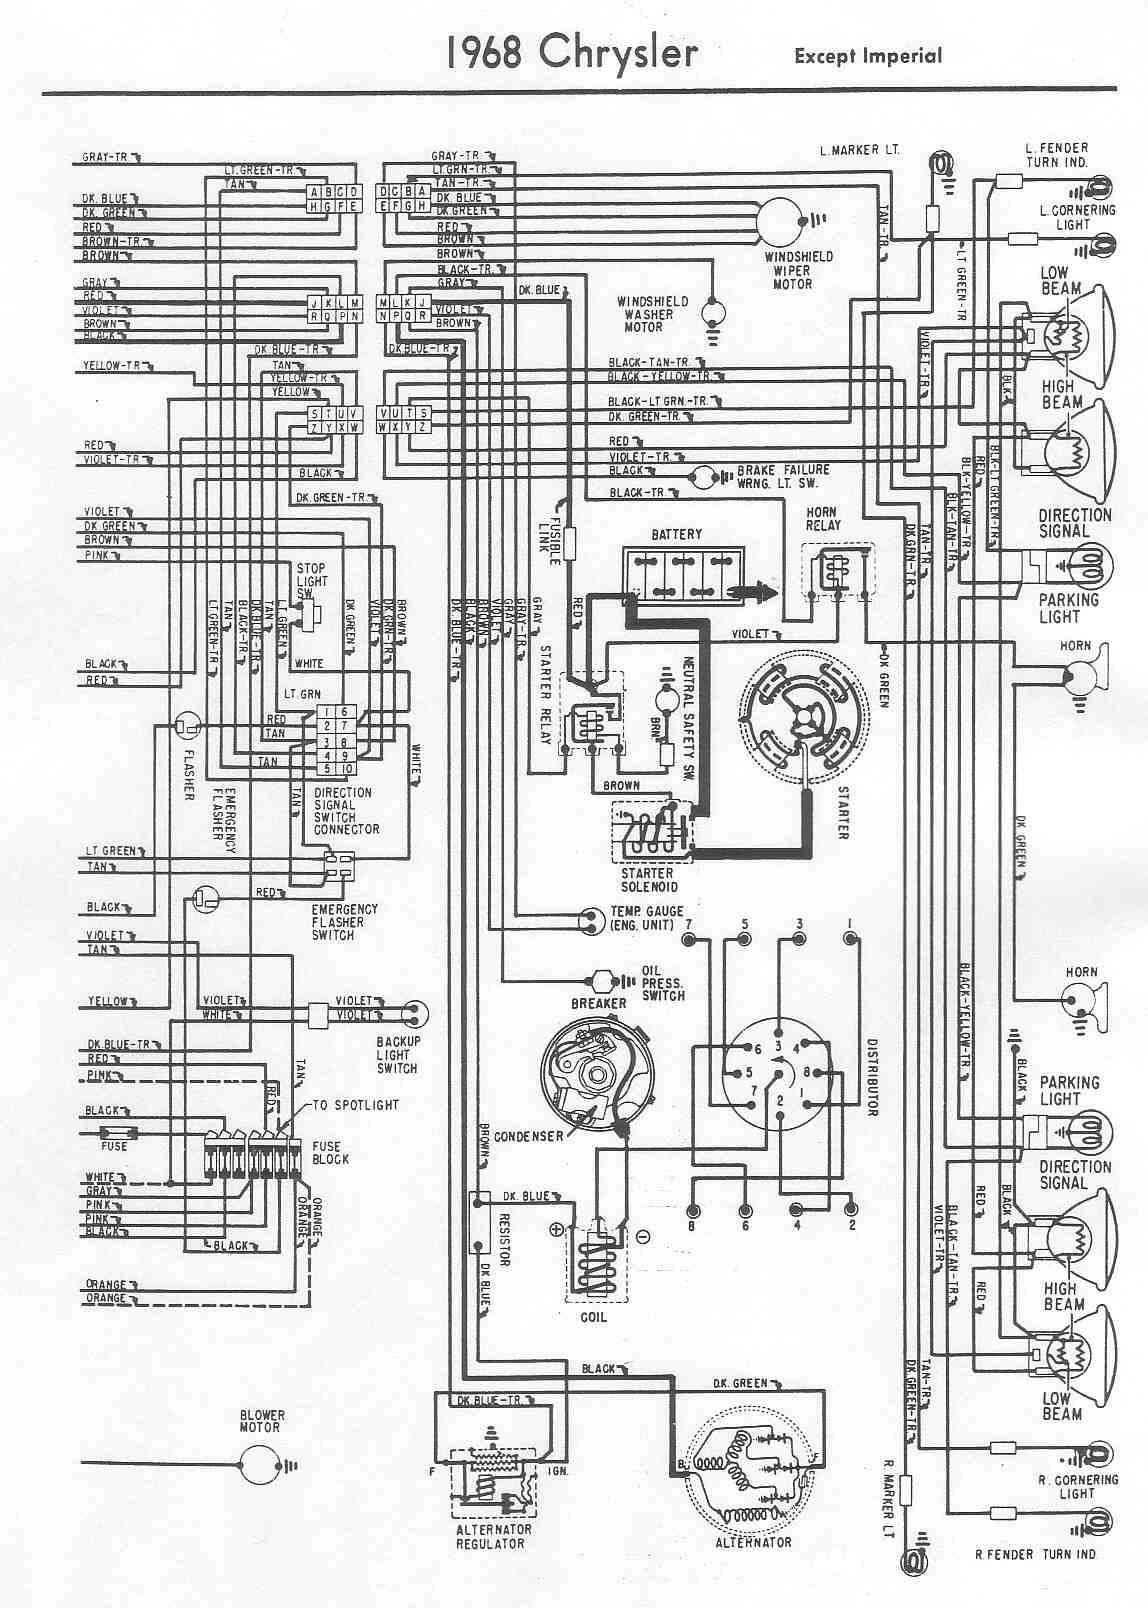 1968 Chevy Impala Wiring Diagram Electrical Diagrams Ford Falcon Cadillac Steering Column Trusted